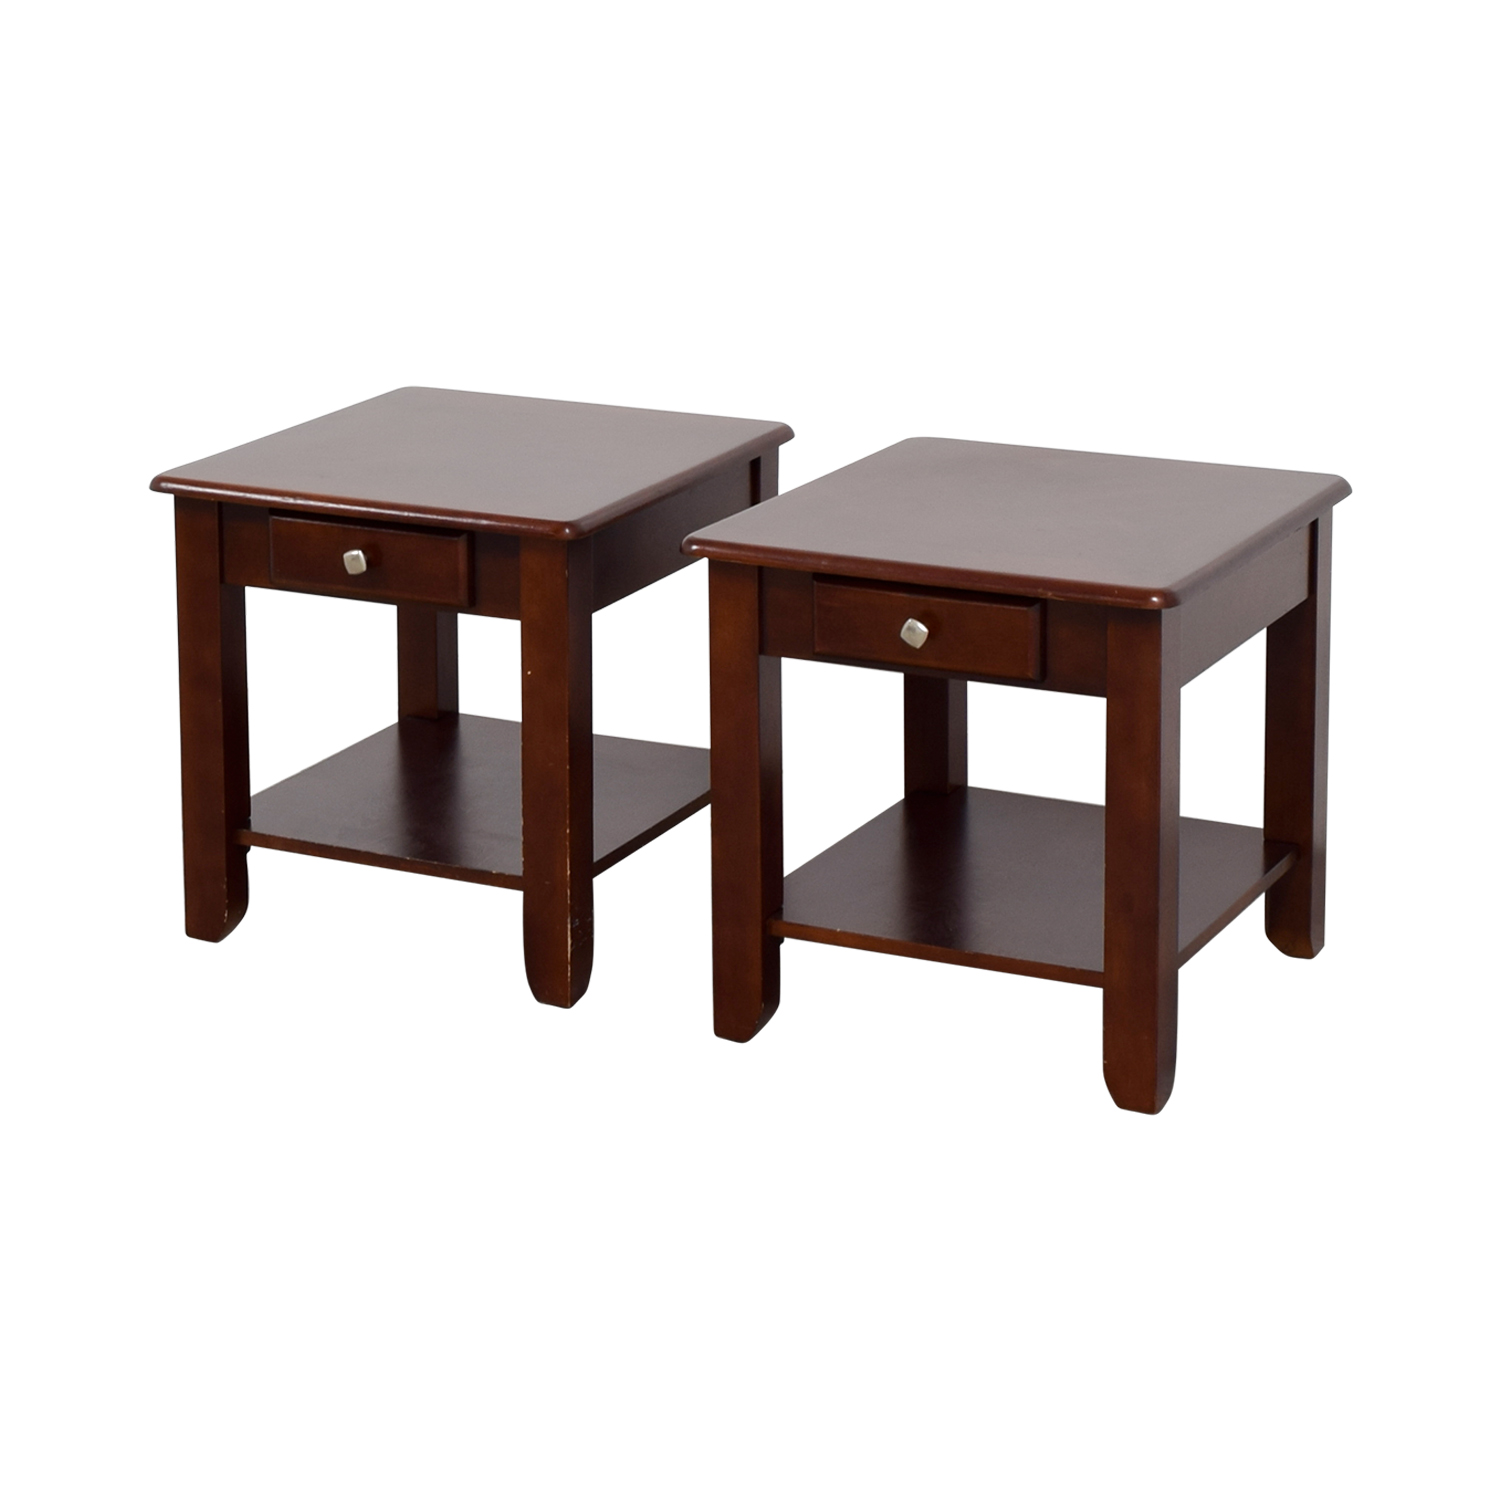 82 Off Raymour Flanigan Raymour Flanigan End Table Set Tables